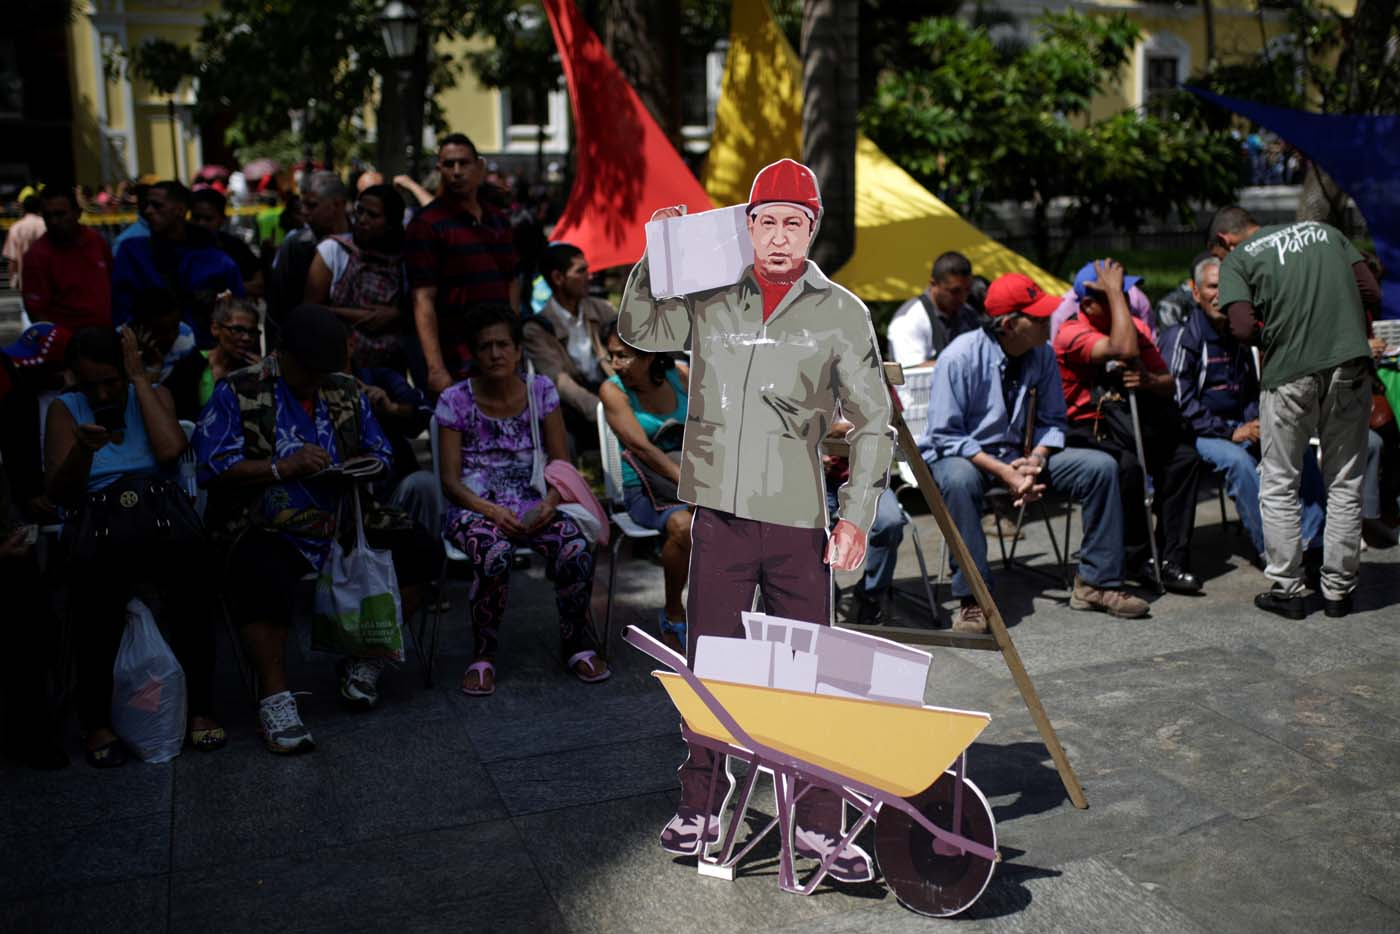 A cardboard cut-out of Venezuela's late President Hugo Chavez is seen as people wait to apply for a card that will register them for government social programmes, in Caracas, Venezuela January 20, 2017. REUTERS/Marco Bello